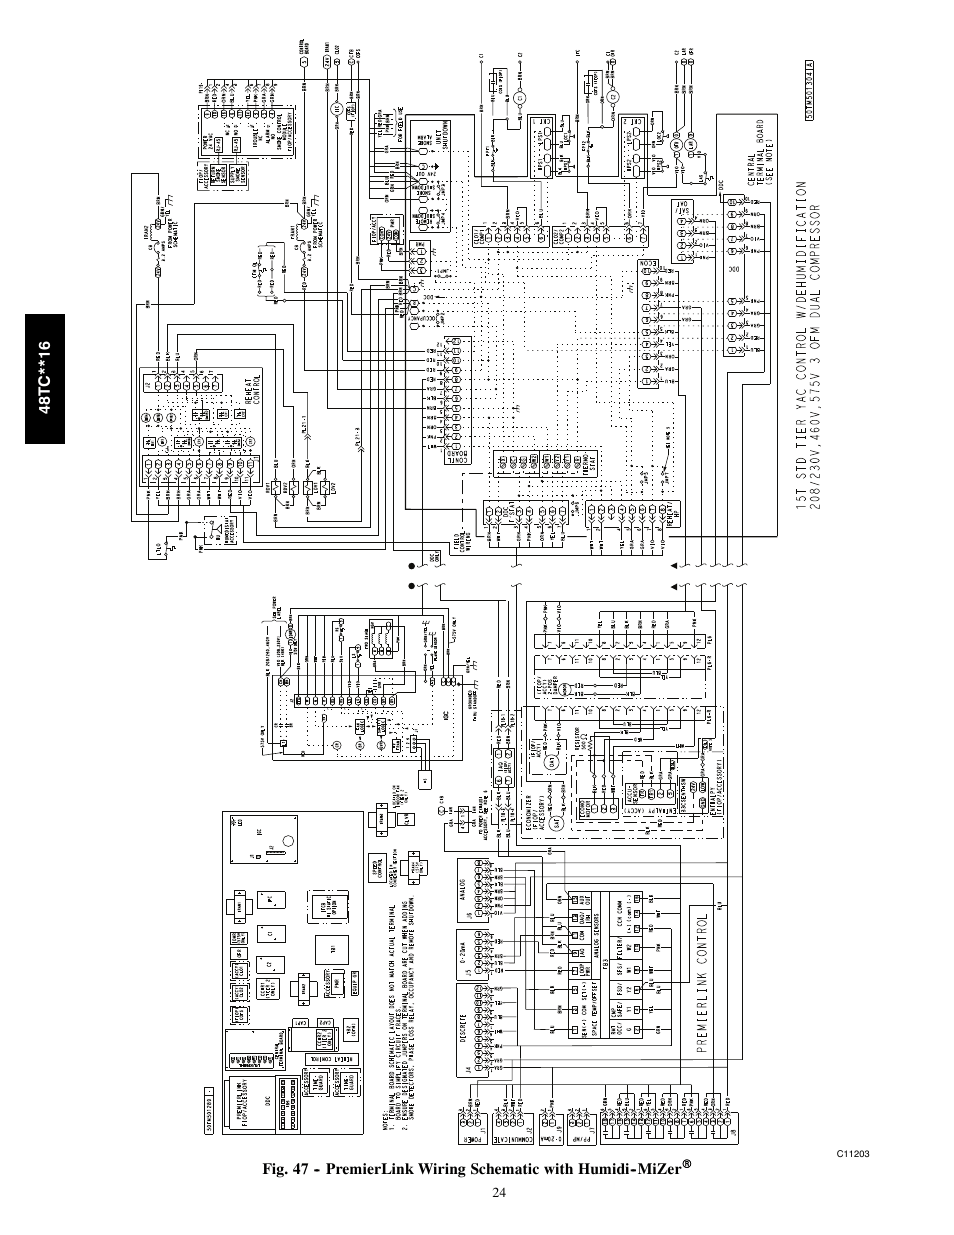 Carrier 6400 Diagram Wiring : 27 Wiring Diagram Images